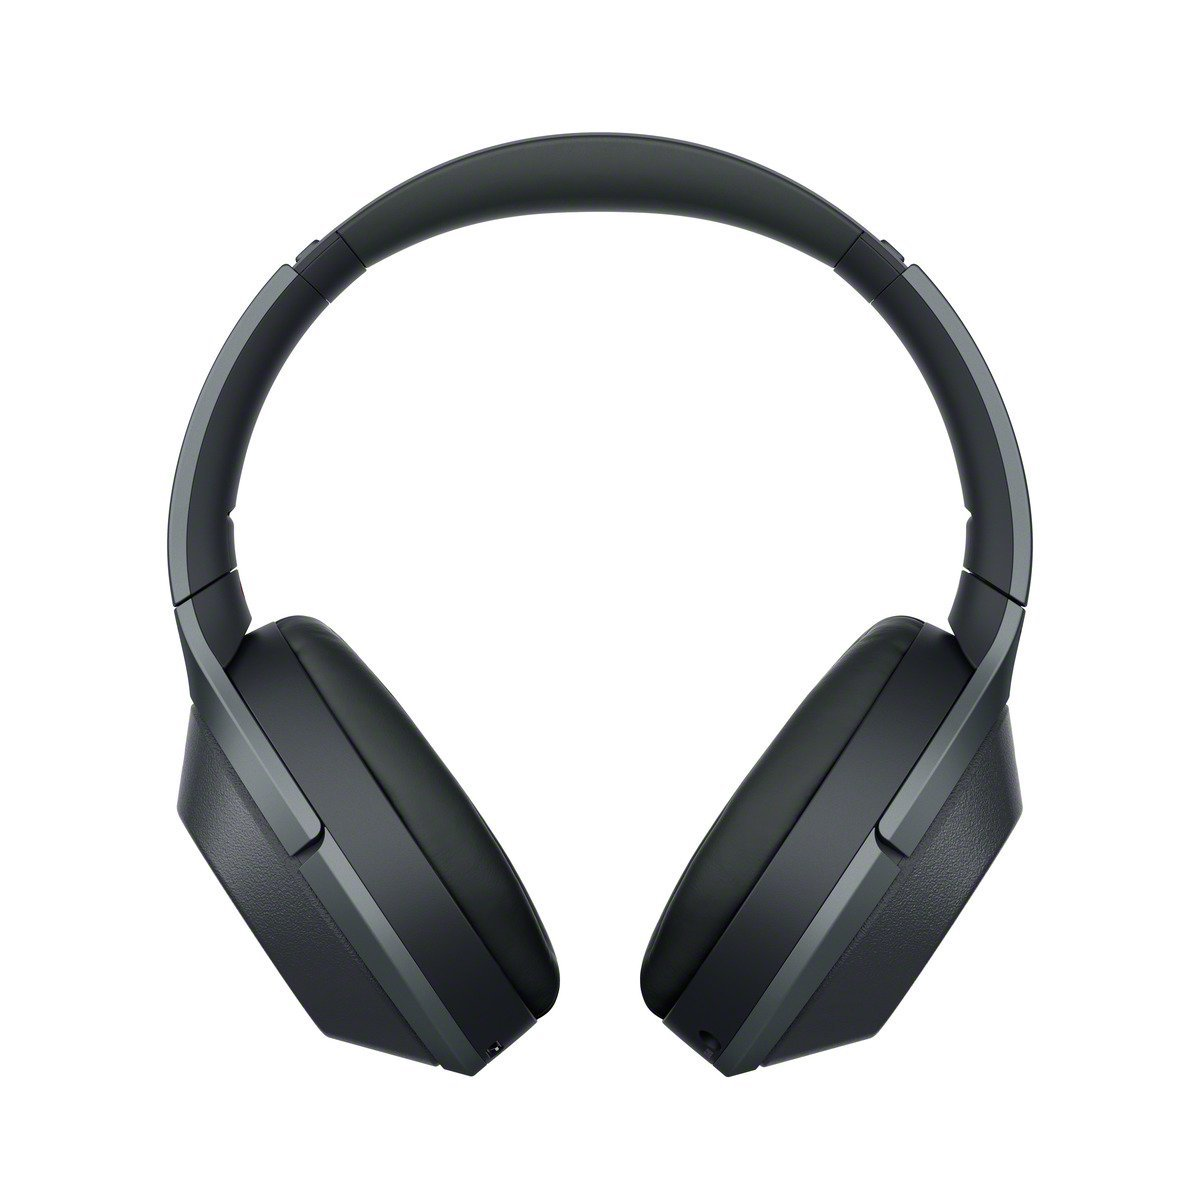 Sony WH-1000XM2 Cuffie Over-Ear, Bluetooth, Nero